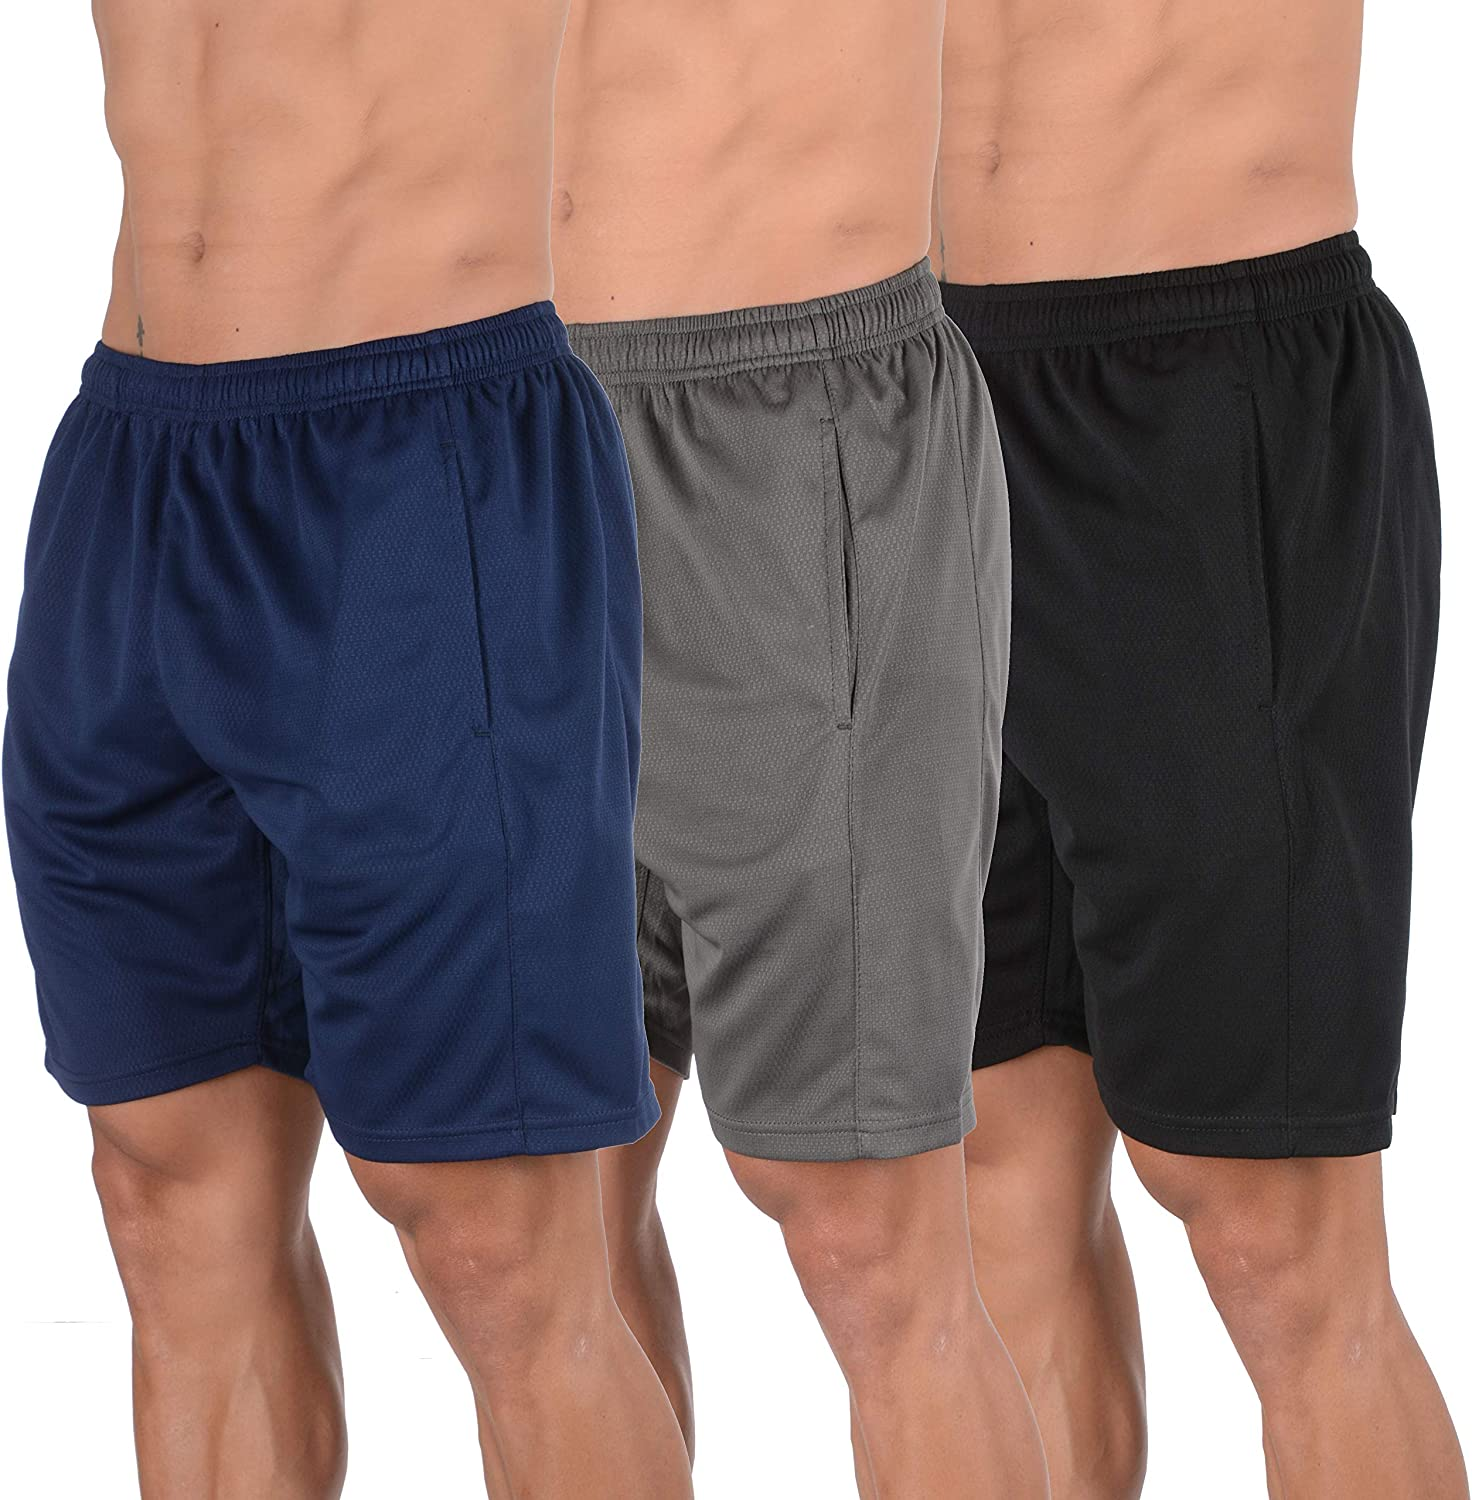 YoungLA Mens Shorts Pack of 3 Athletic Basketball Gym Workout Running 116: Clothing